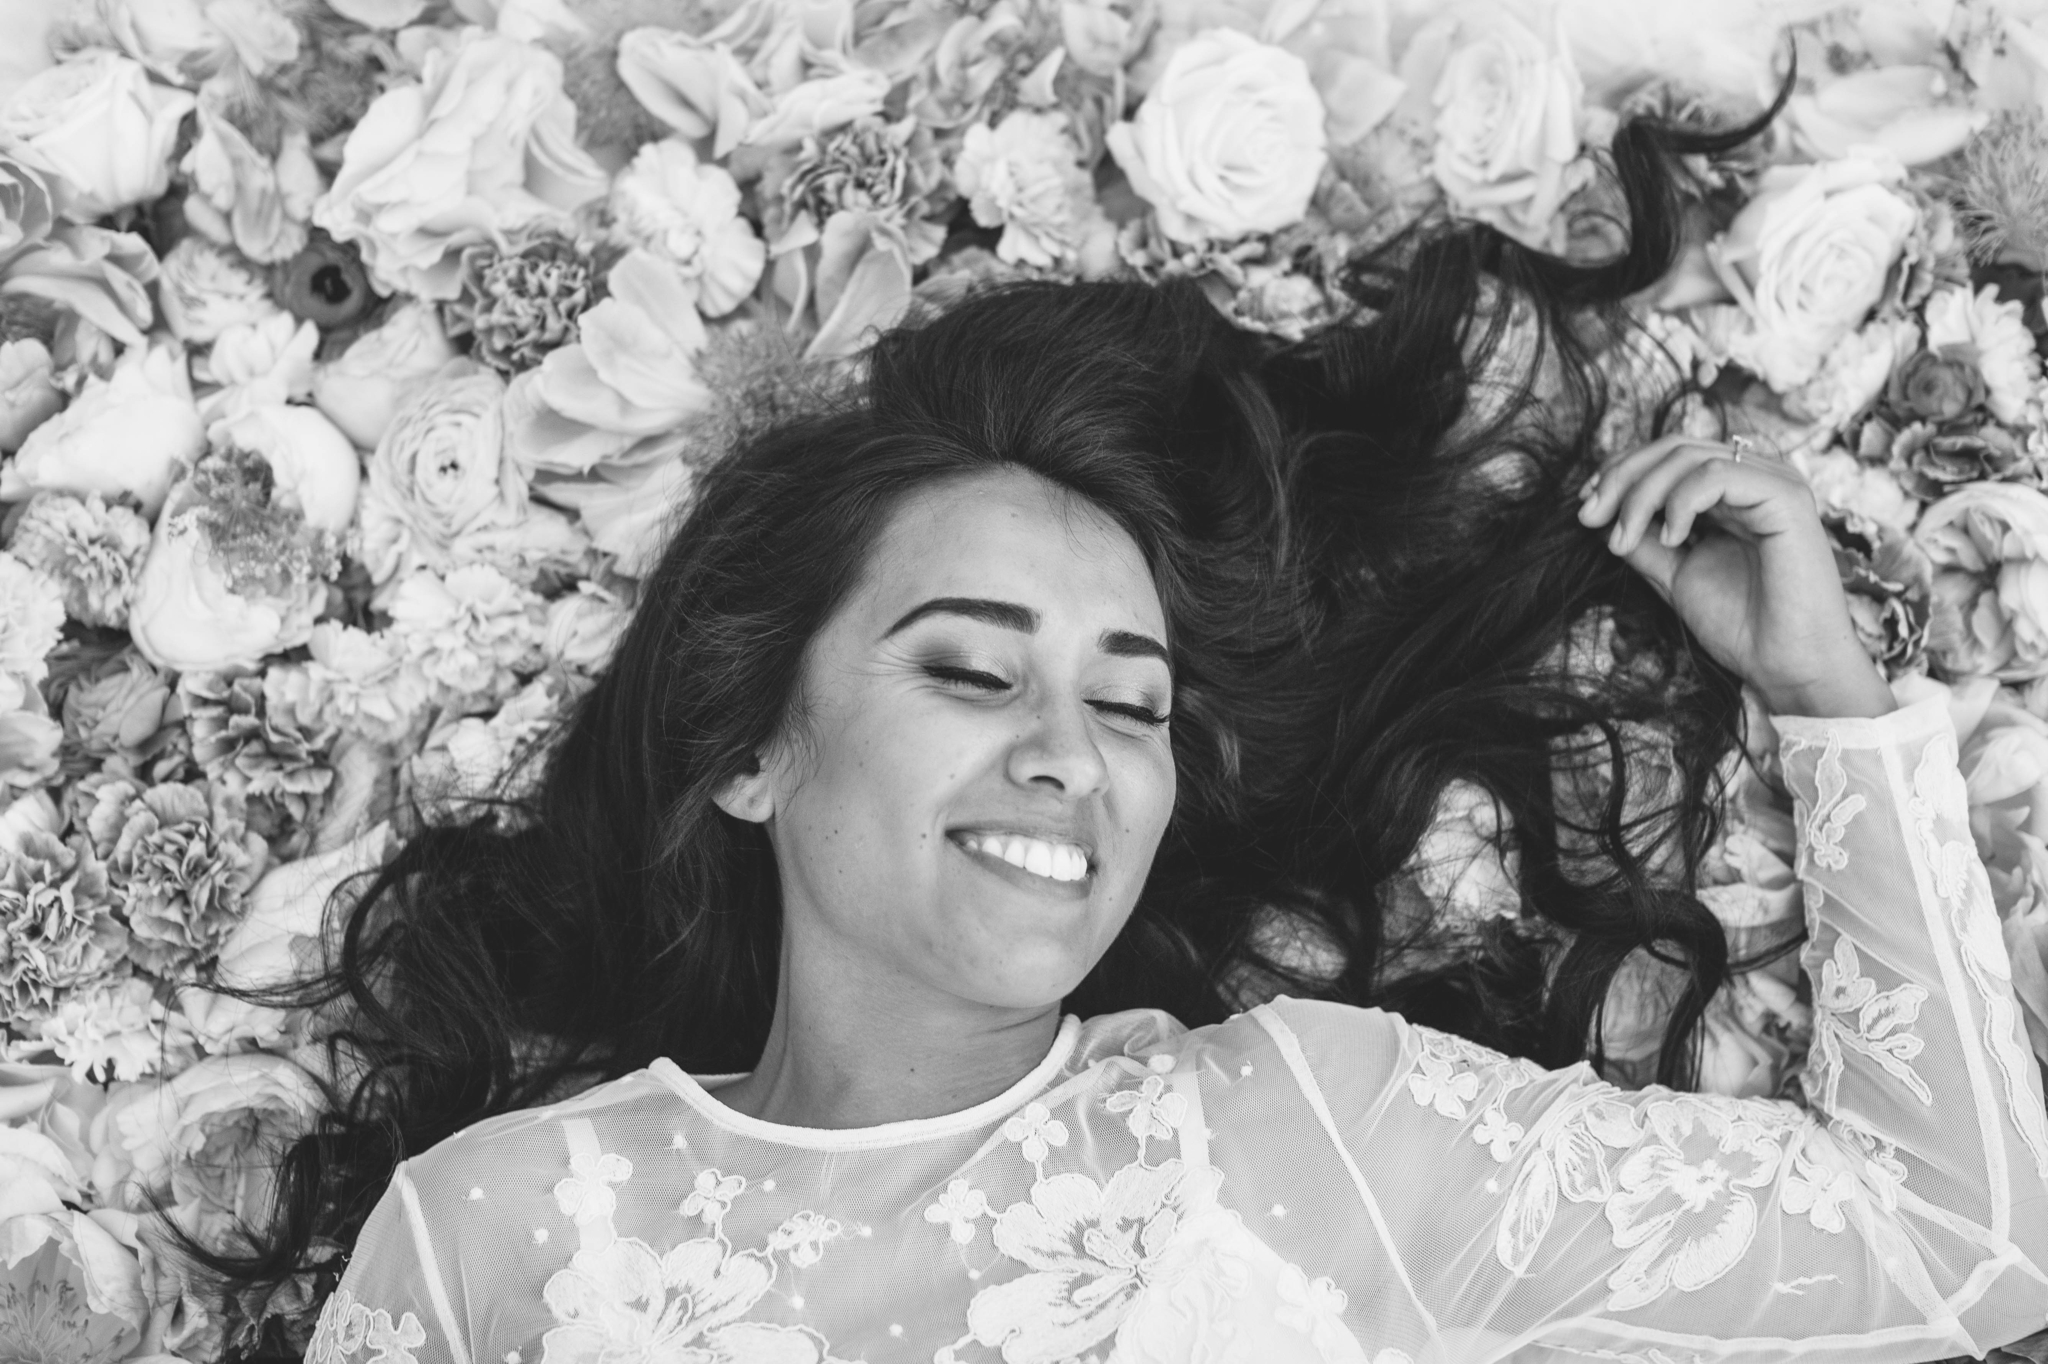 Bridal Portraits - Bride laying on a bed of flowers - Ana + Elijah - Wedding at Loulu Palm in Haleiwa, HI - Oahu Hawaii Wedding Photographer - #hawaiiweddingphotographer #oahuweddings #hawaiiweddings